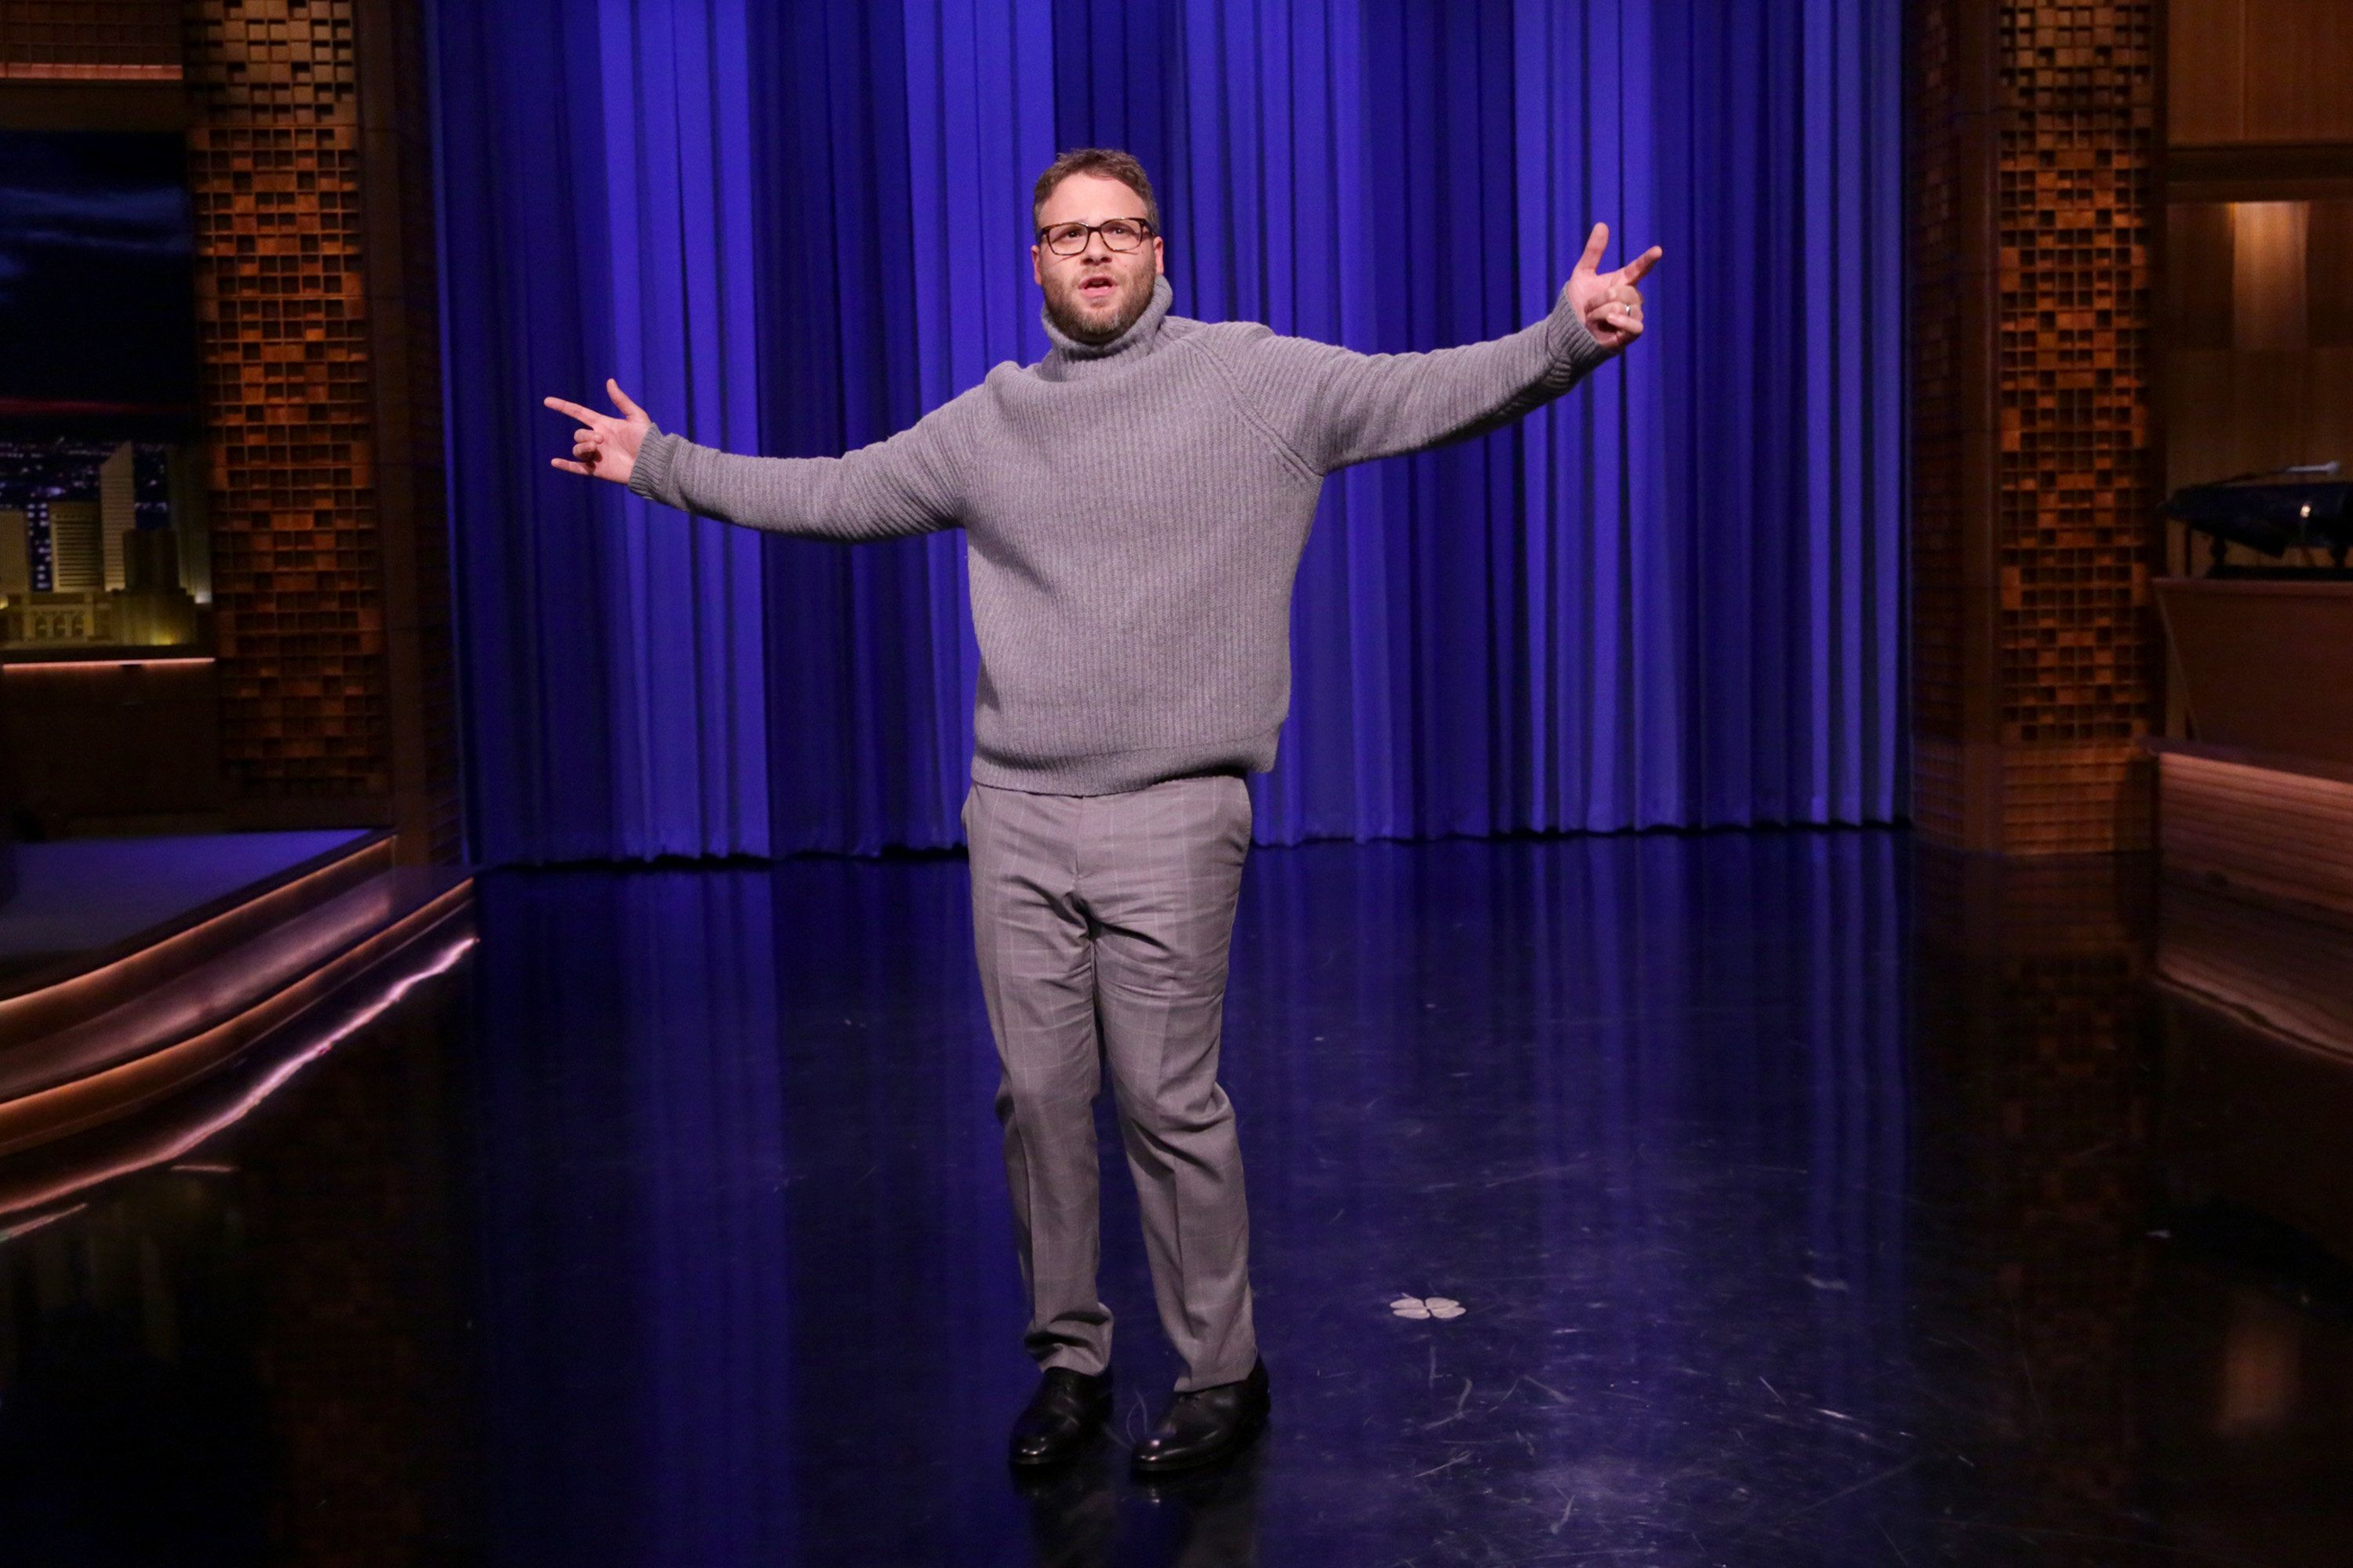 THE TONIGHT SHOW STARRING JIMMY FALLON -- Episode 0516 -- Pictured: Actor Seth Rogen during the 'Lip Sync Battle' sketch on August 5, 2016 -- (Photo by: Andrew Lipovsky/NBC/NBCU Photo Bank via Getty Images)